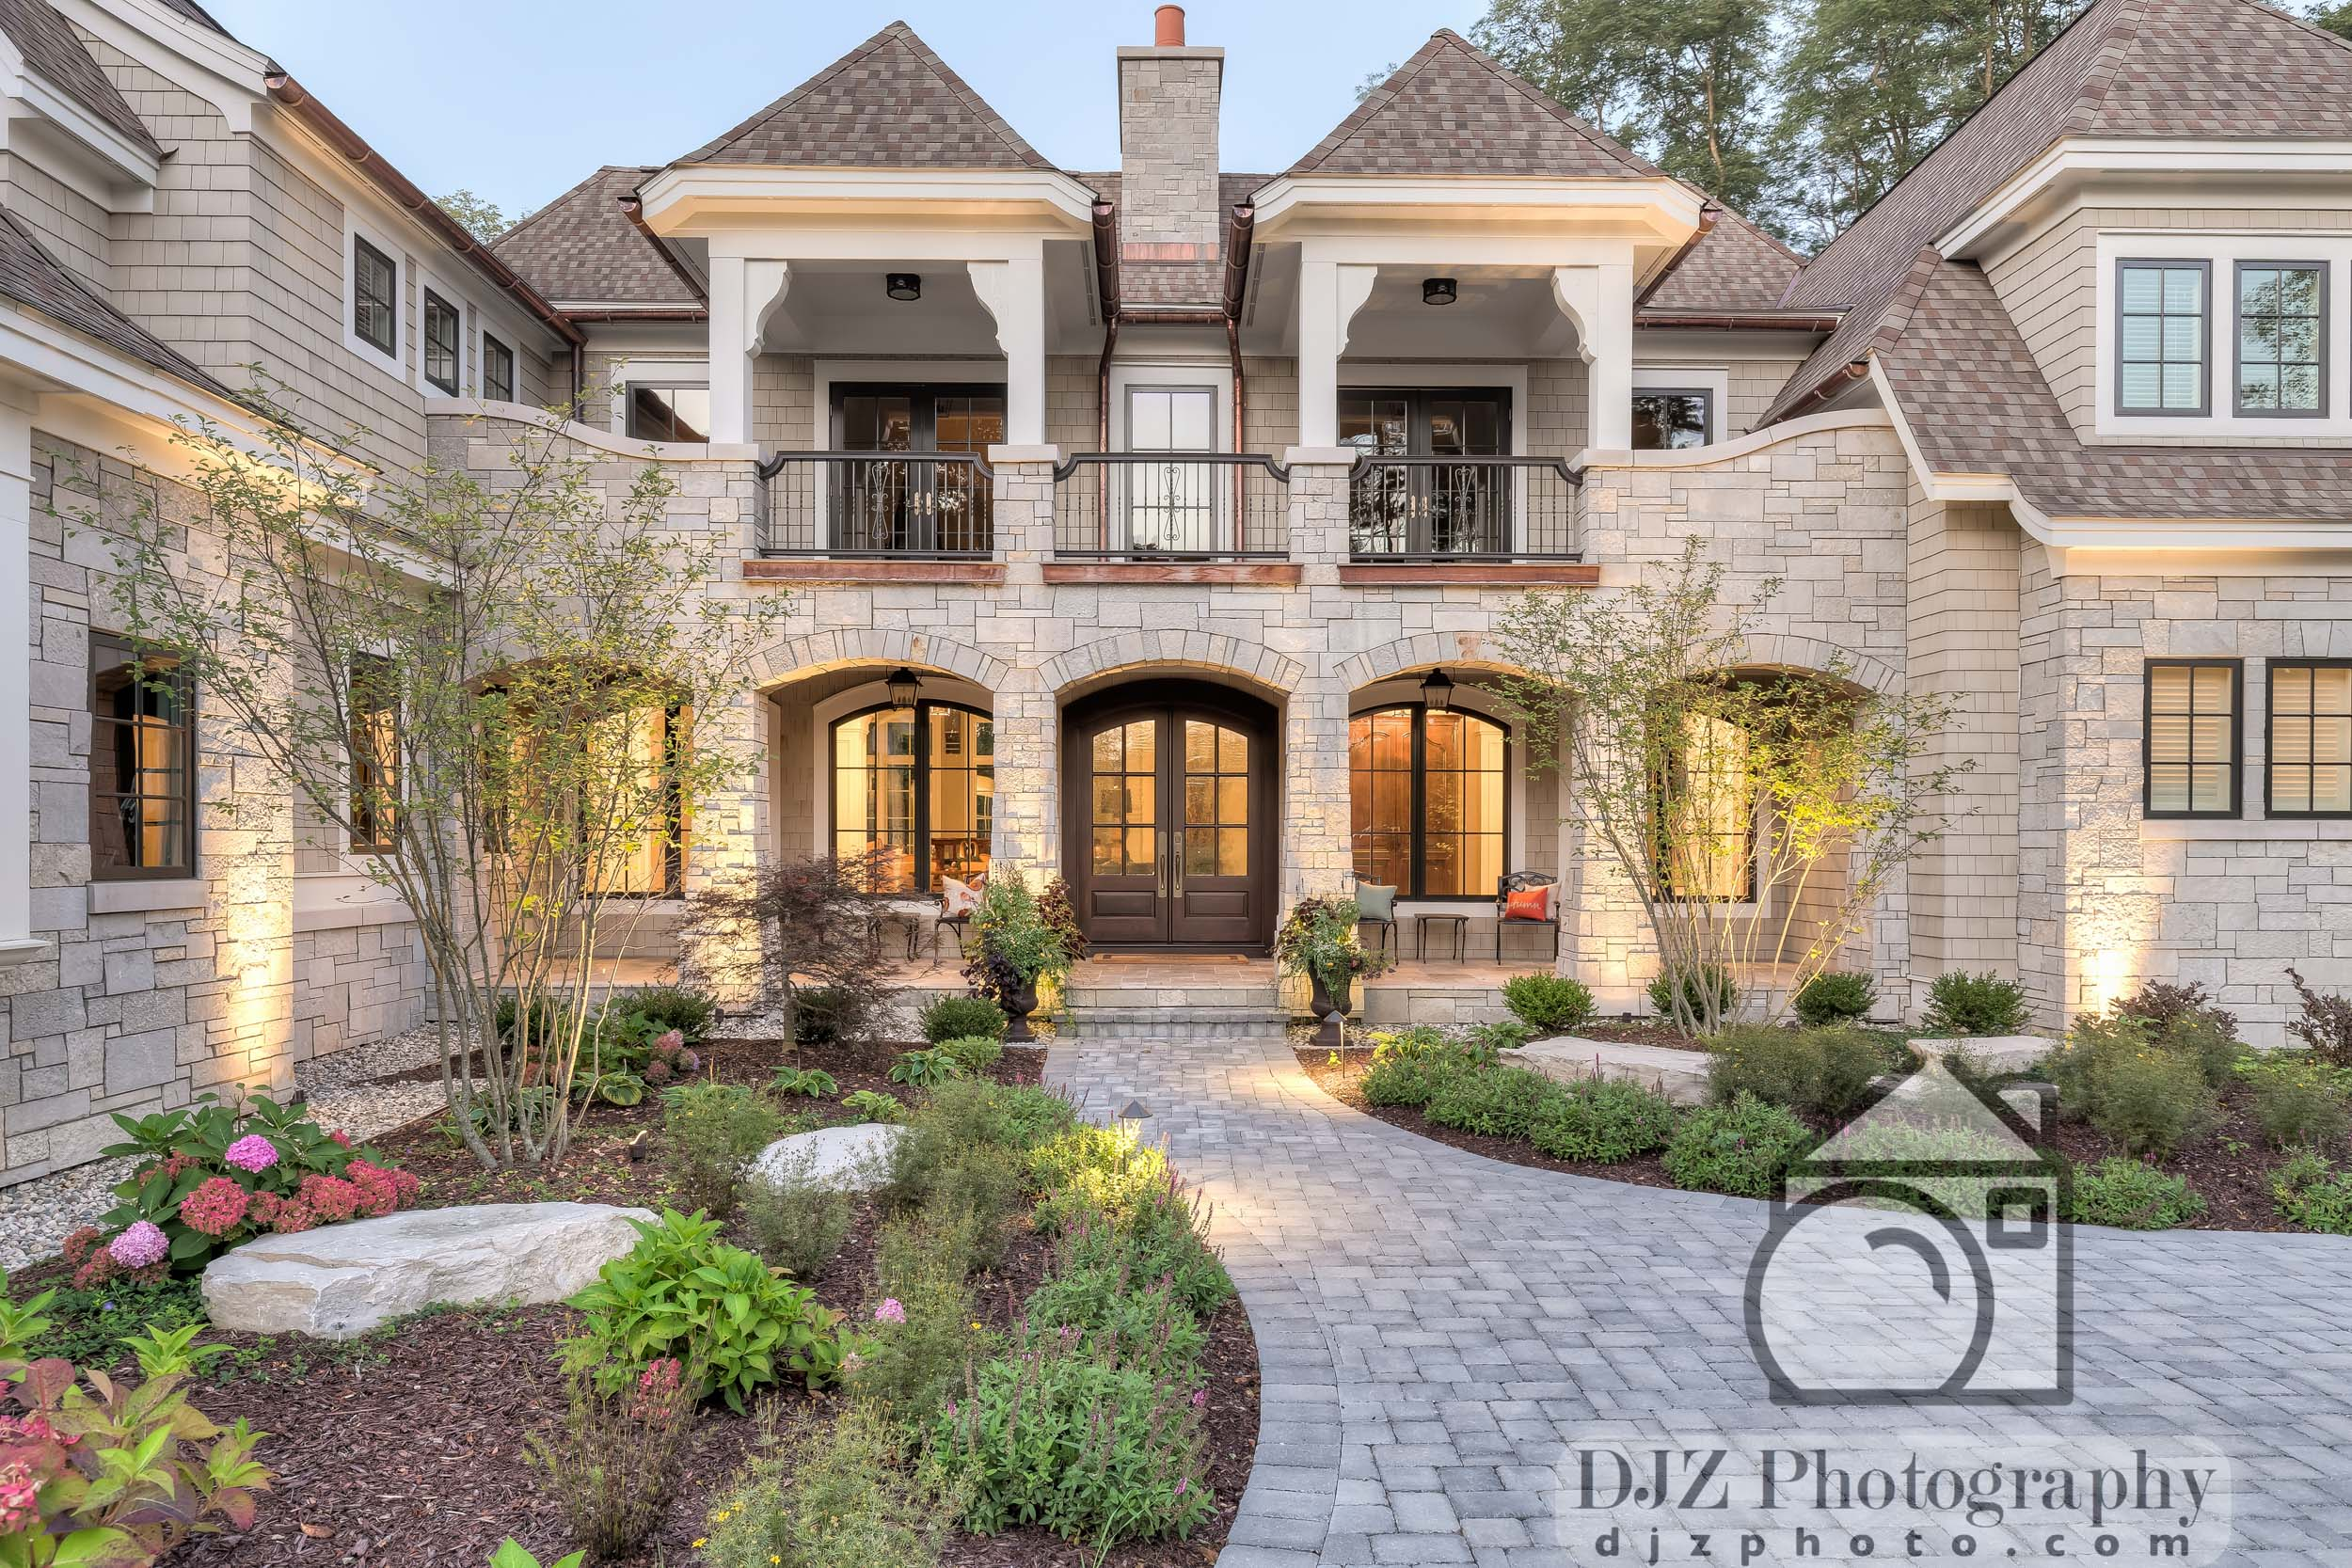 Twilight Exterior 3 - Real Estate Photography